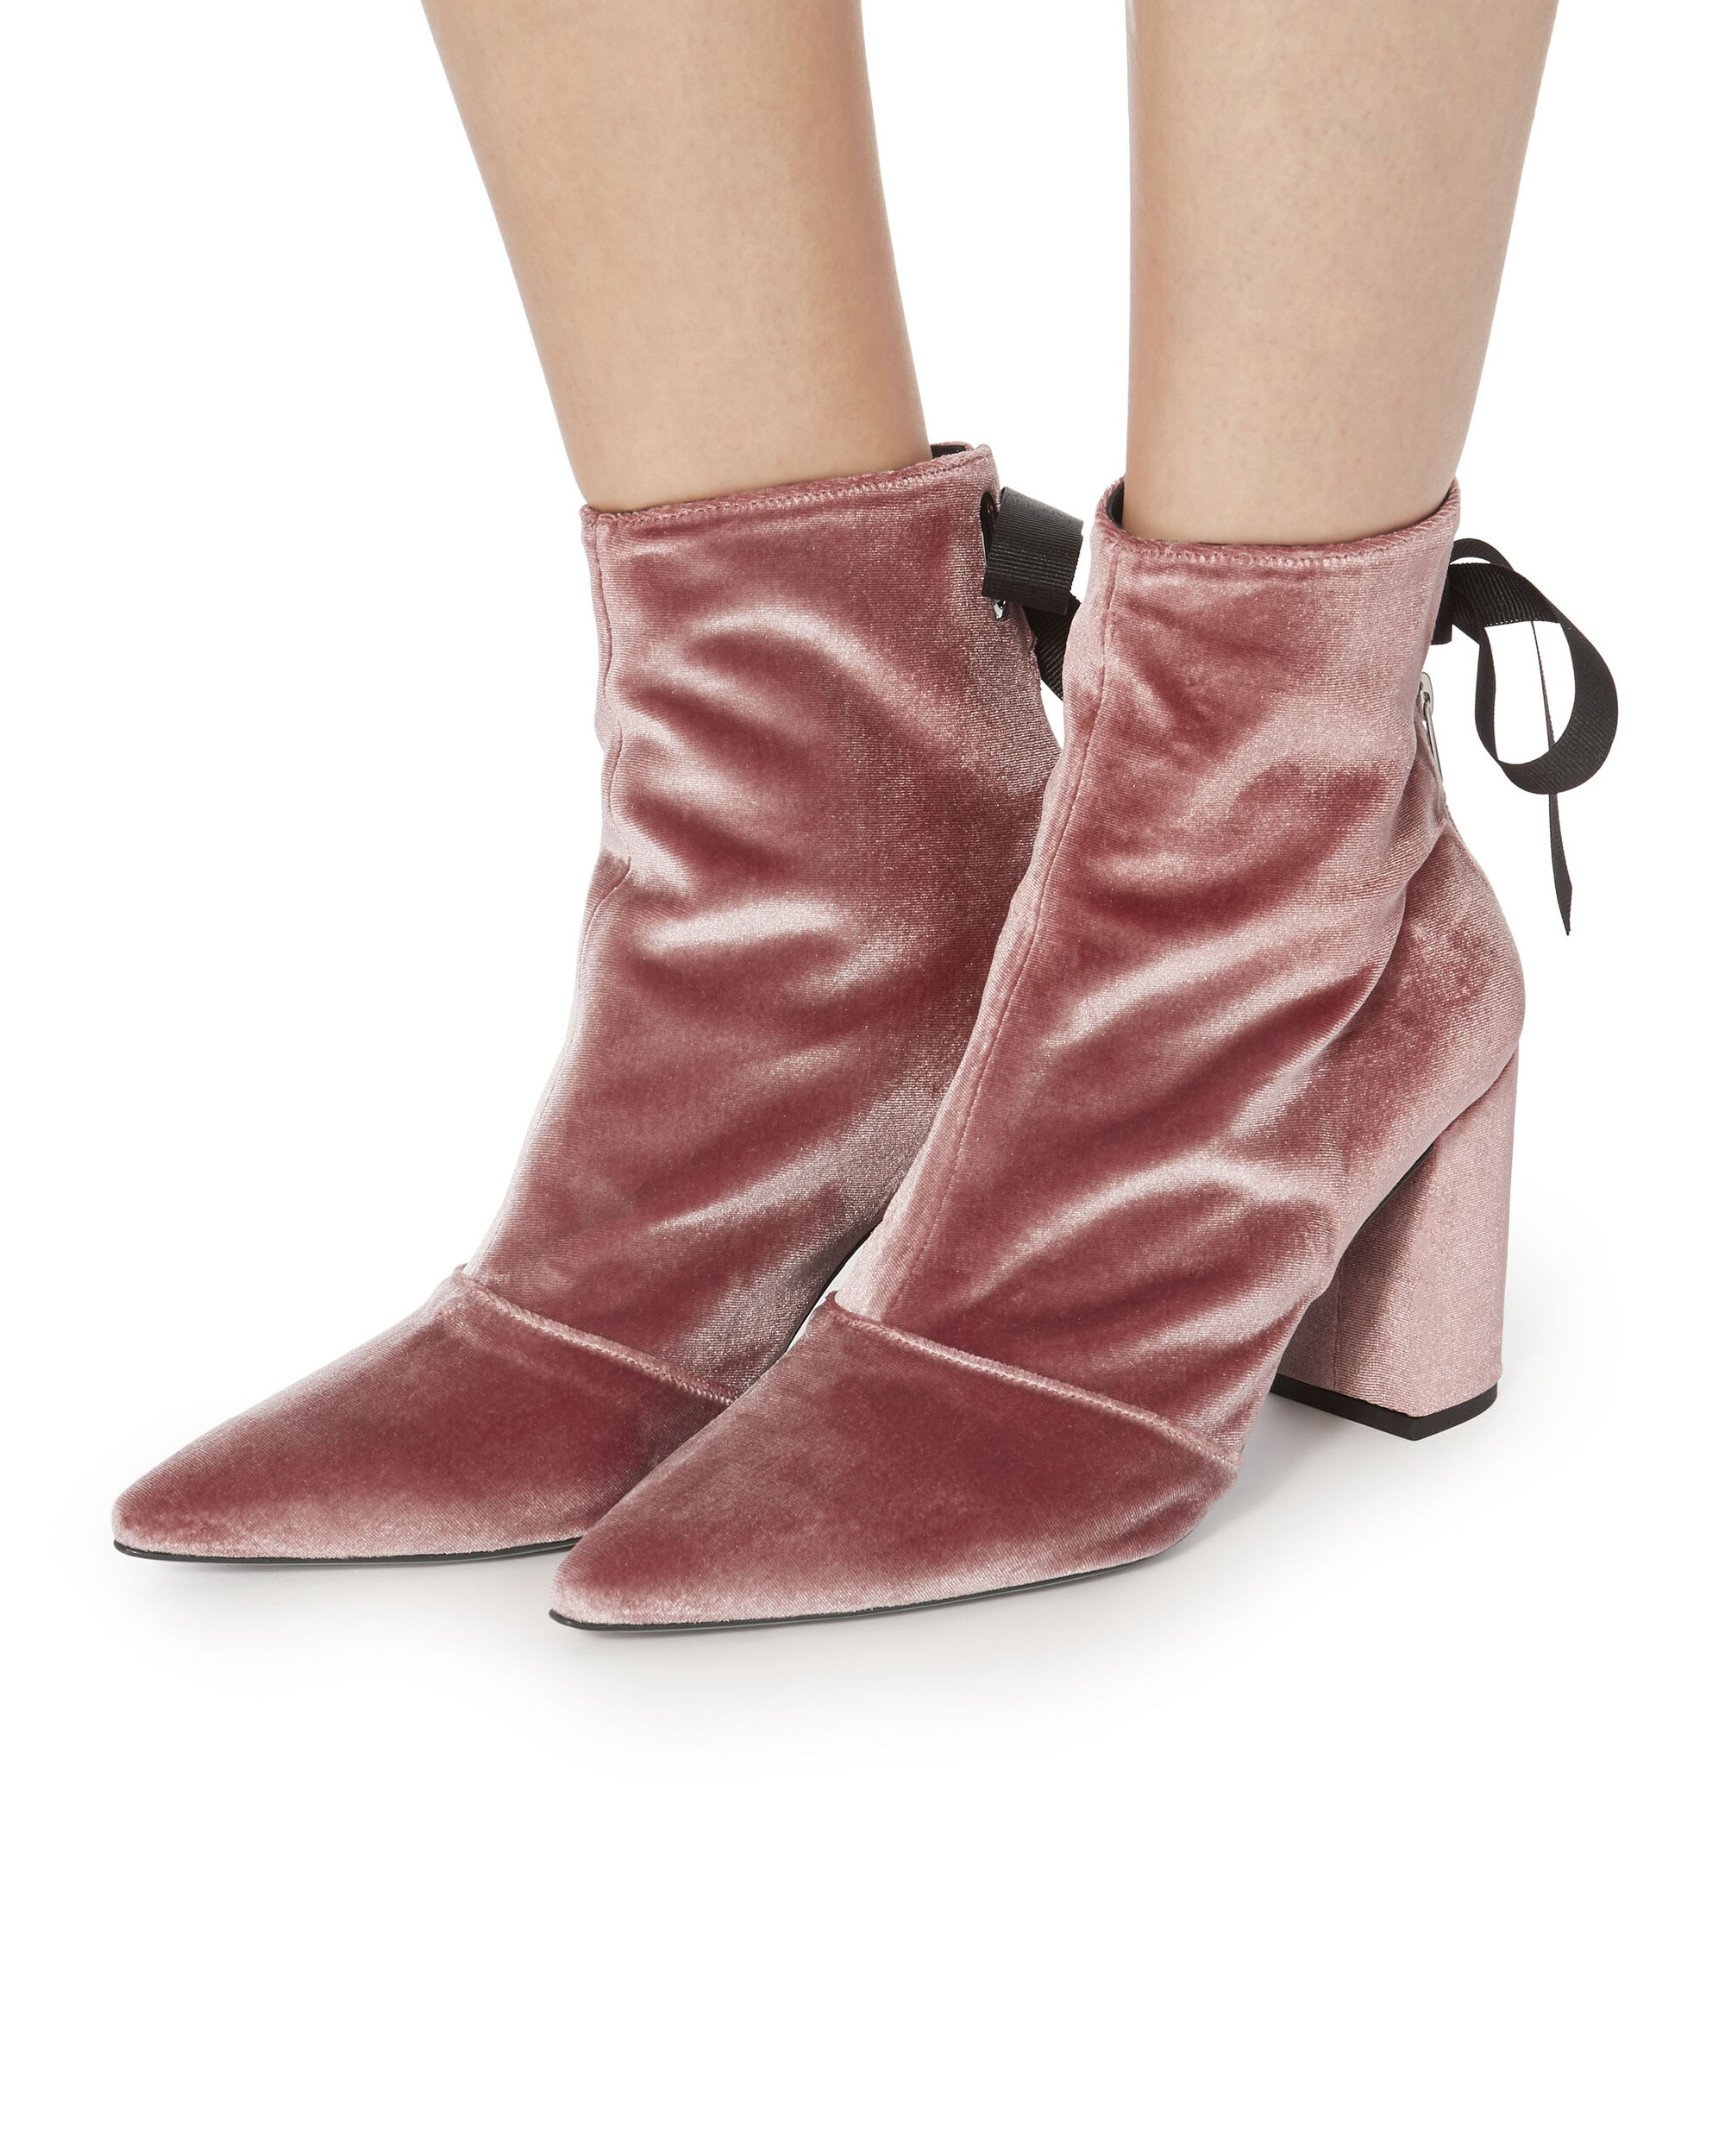 Robert Clergerie X Self-Portrait Karli Pink Velvet Lace-Up Booties, PINK, hi-res